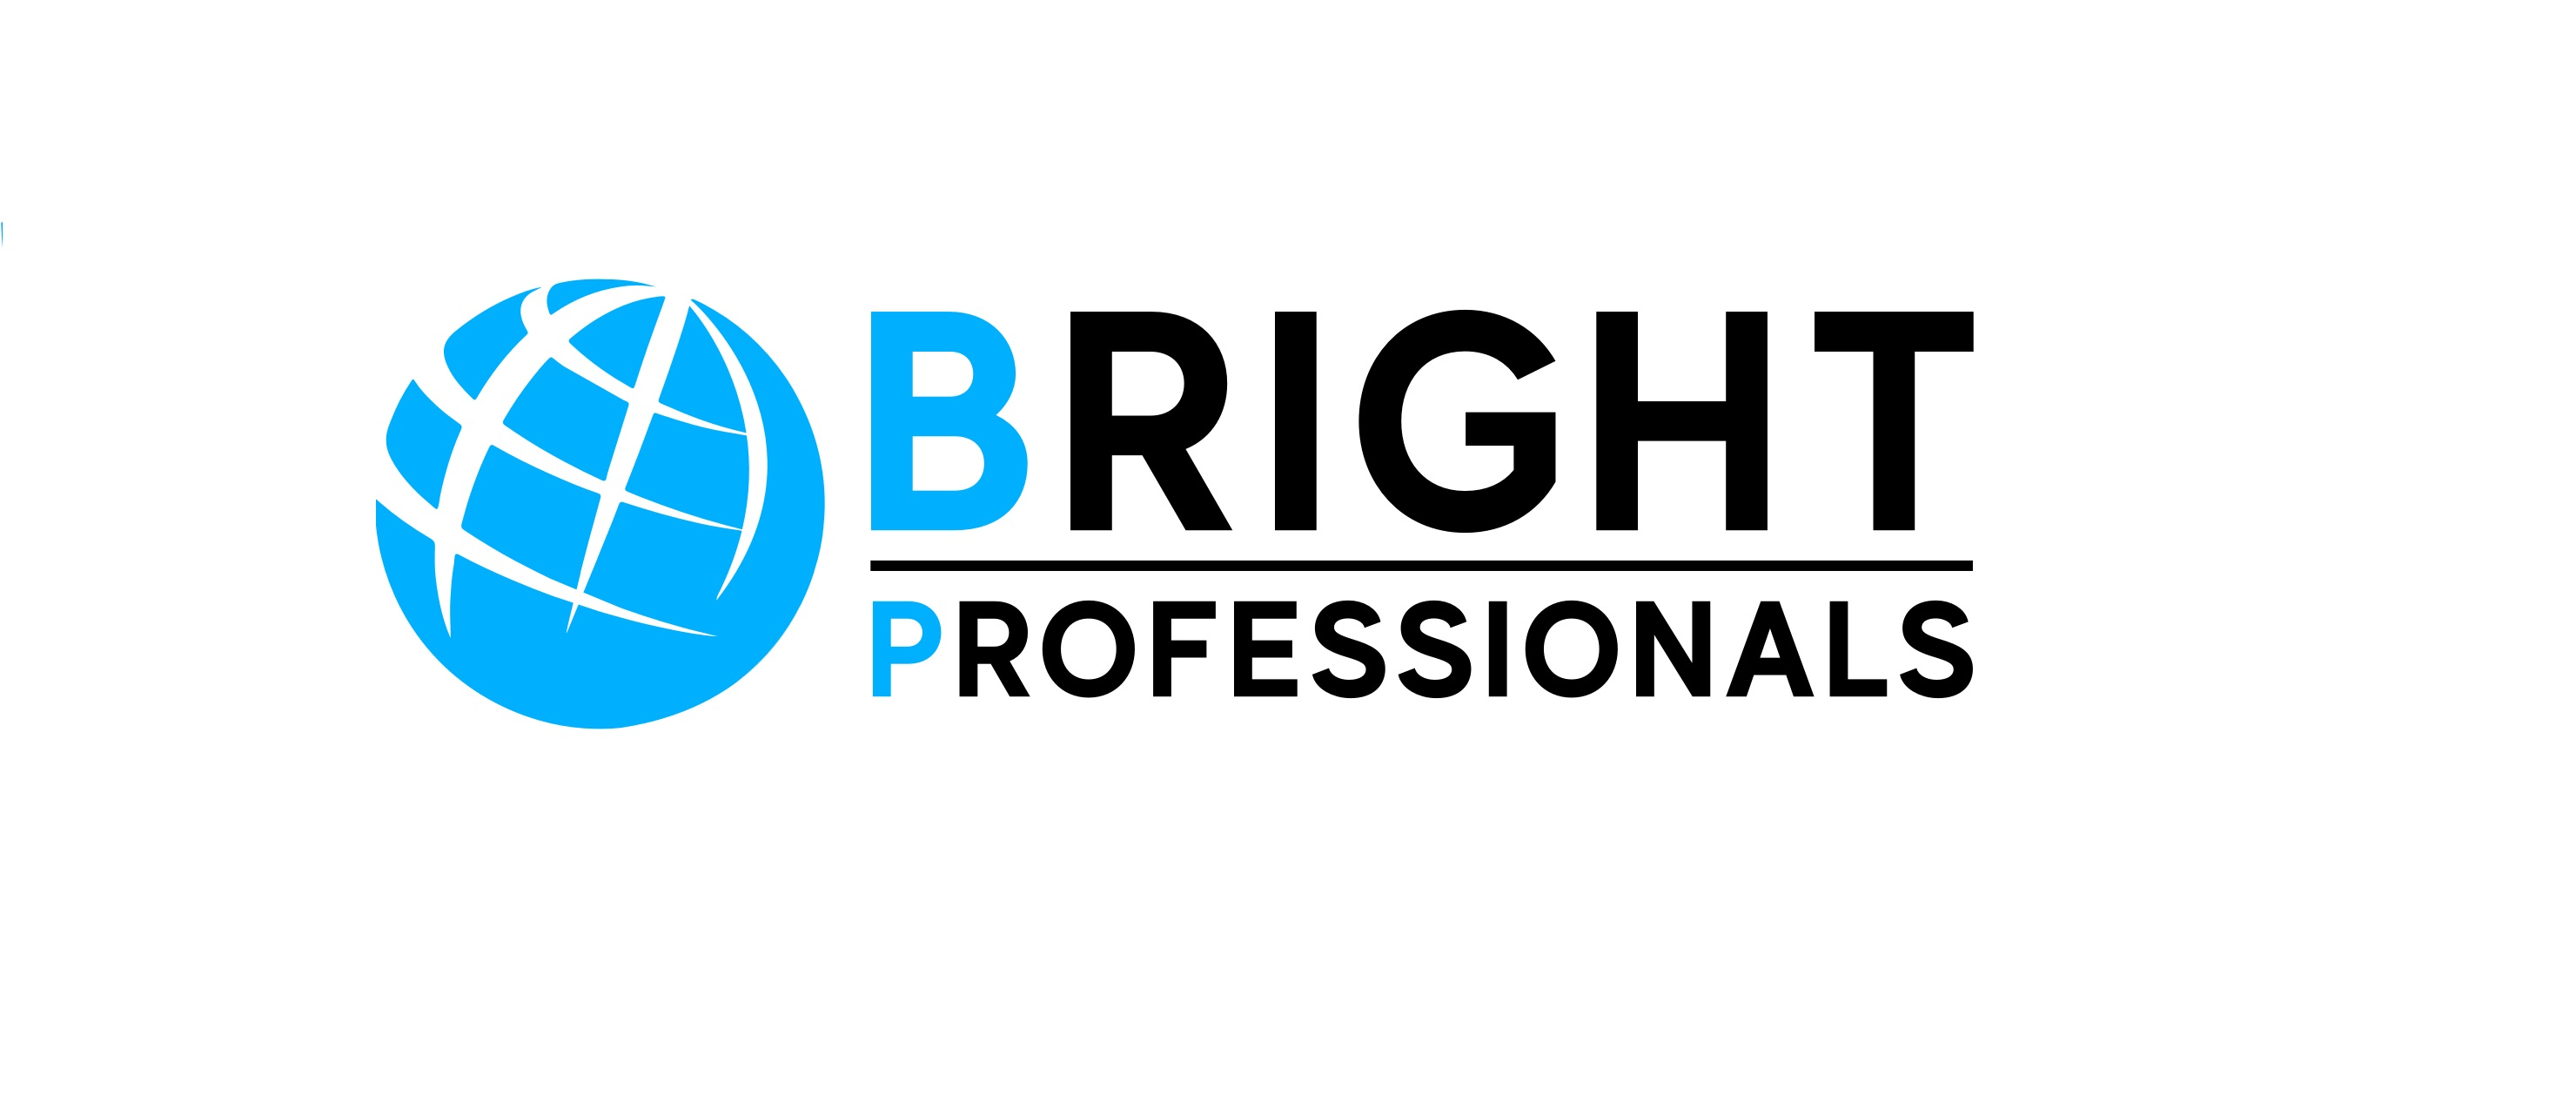 Bright Professionals